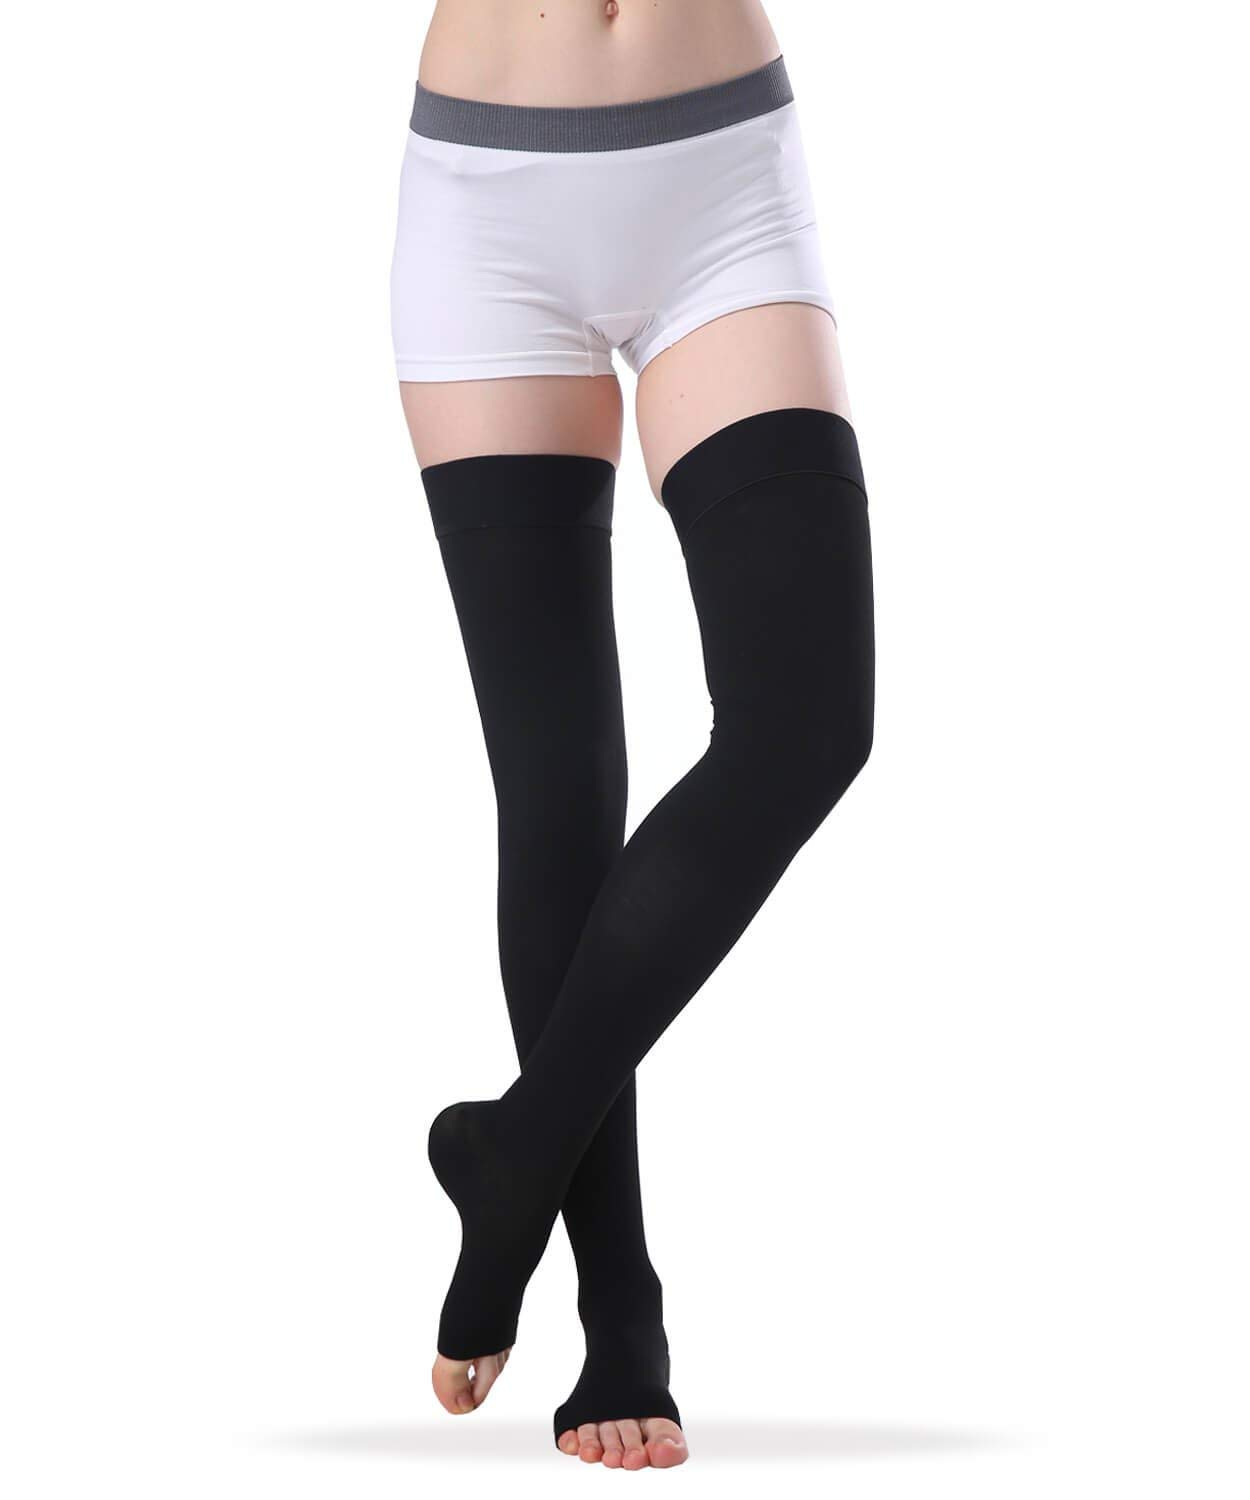 017527b3b21 Get Quotations · SWOLF Women s Thigh High Open Toe Compression Stockings